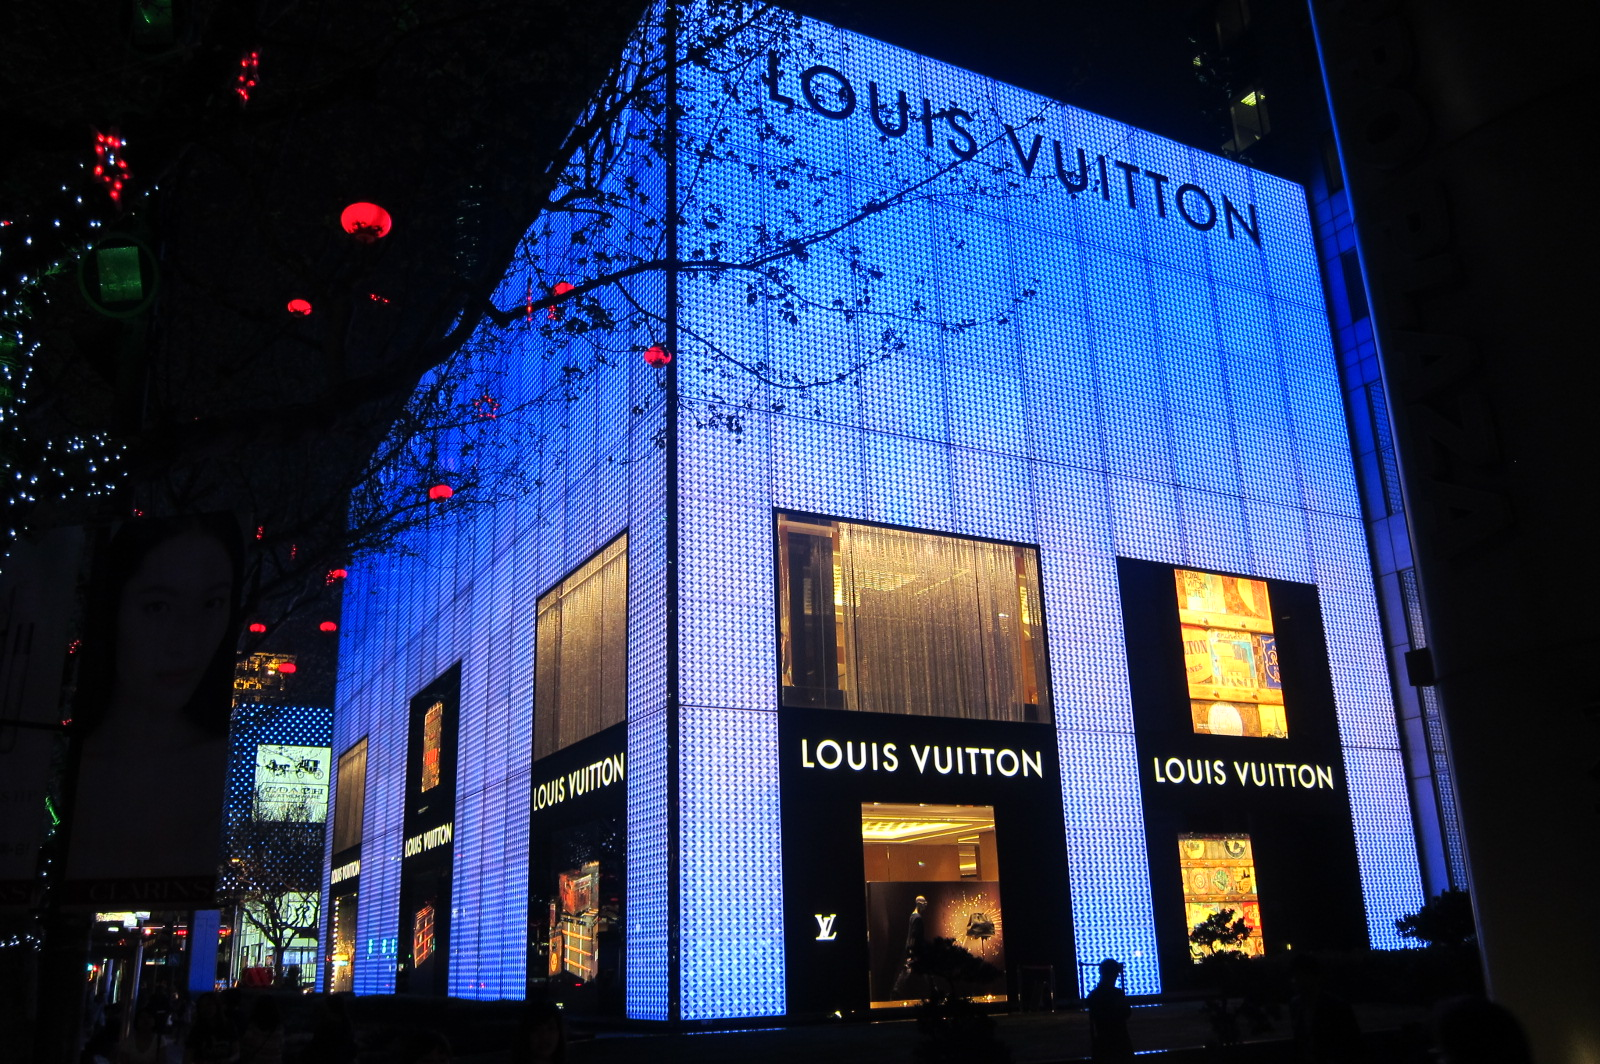 Louis Vuitton Huahuai Road Shanghai diventera flagship Victoria's Secret